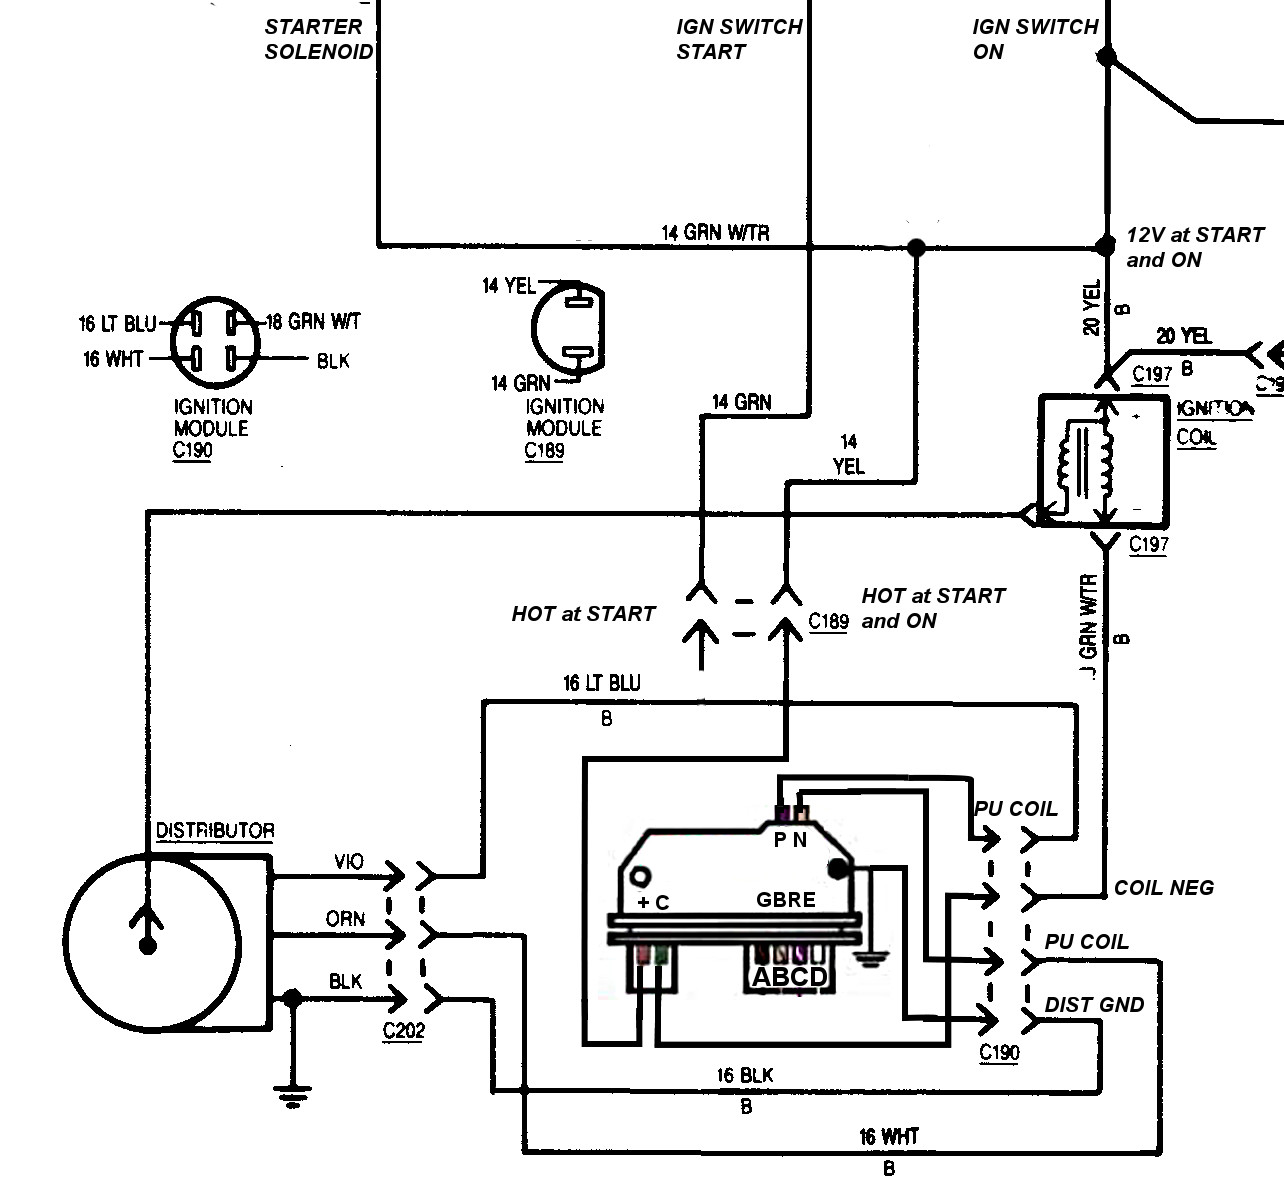 gm ignition module wiring diagram - zenith ats wiring diagram for wiring  diagram schematics  wiring diagram schematics